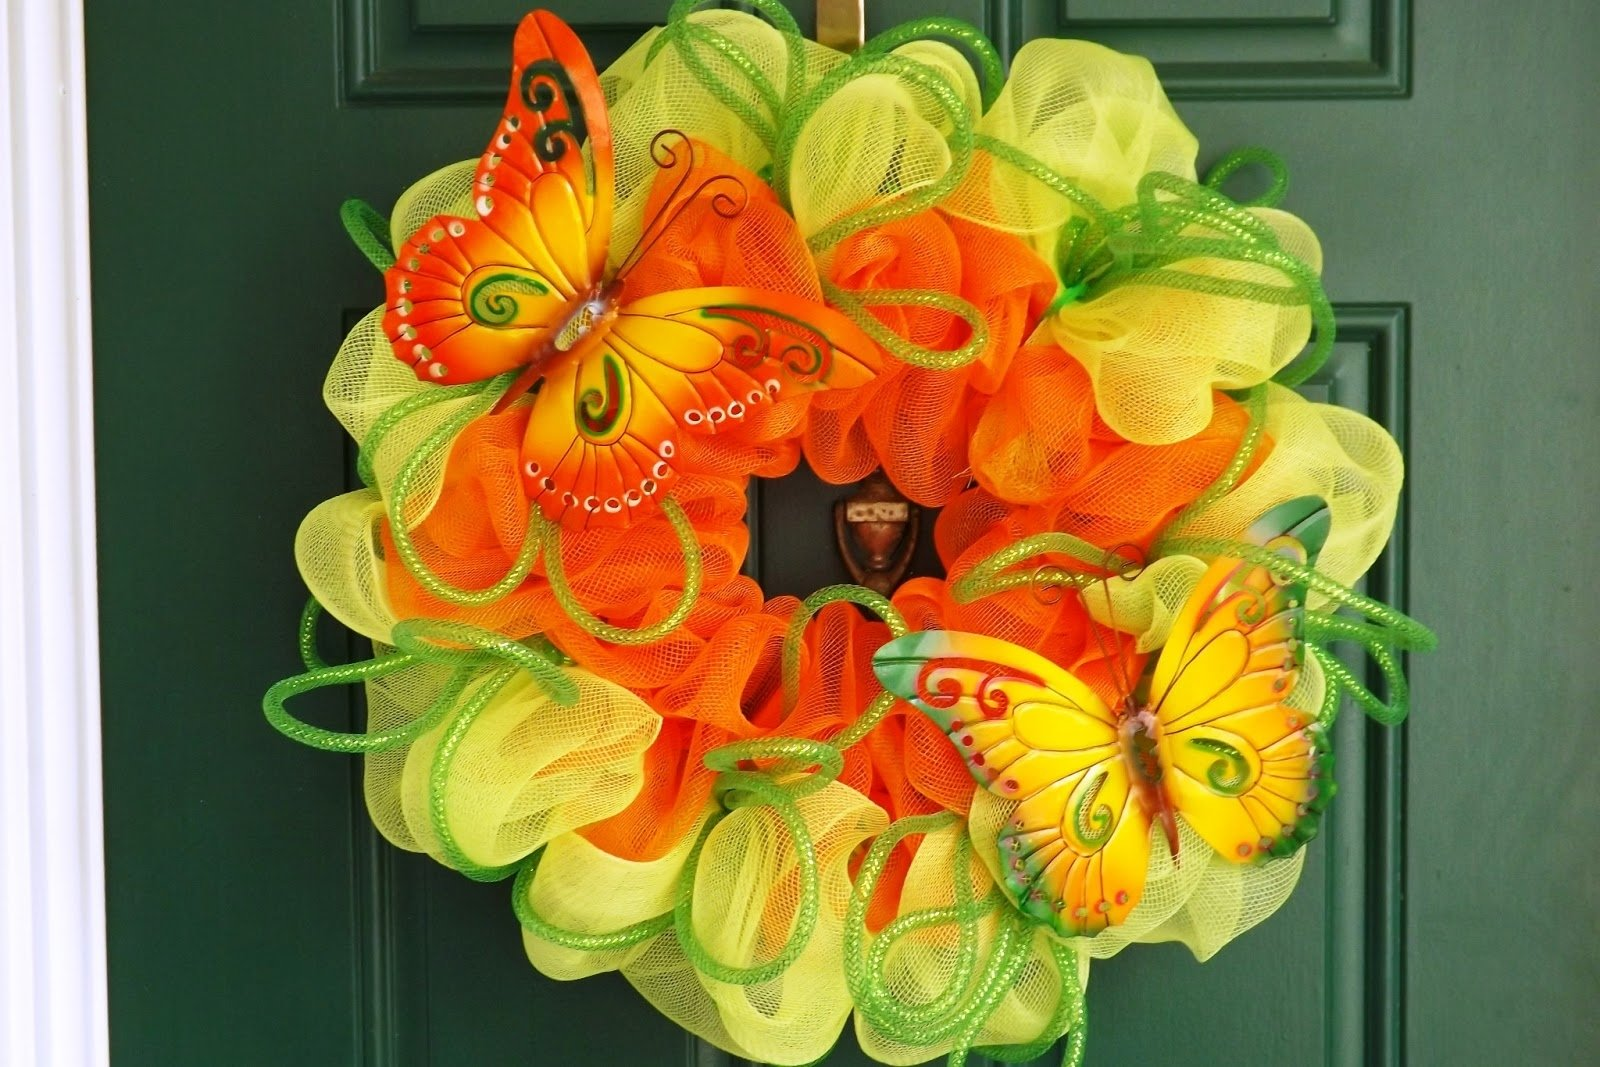 10 Fabulous Spring Deco Mesh Wreath Ideas new orleans craftsdesign spring summer wreaths 2020